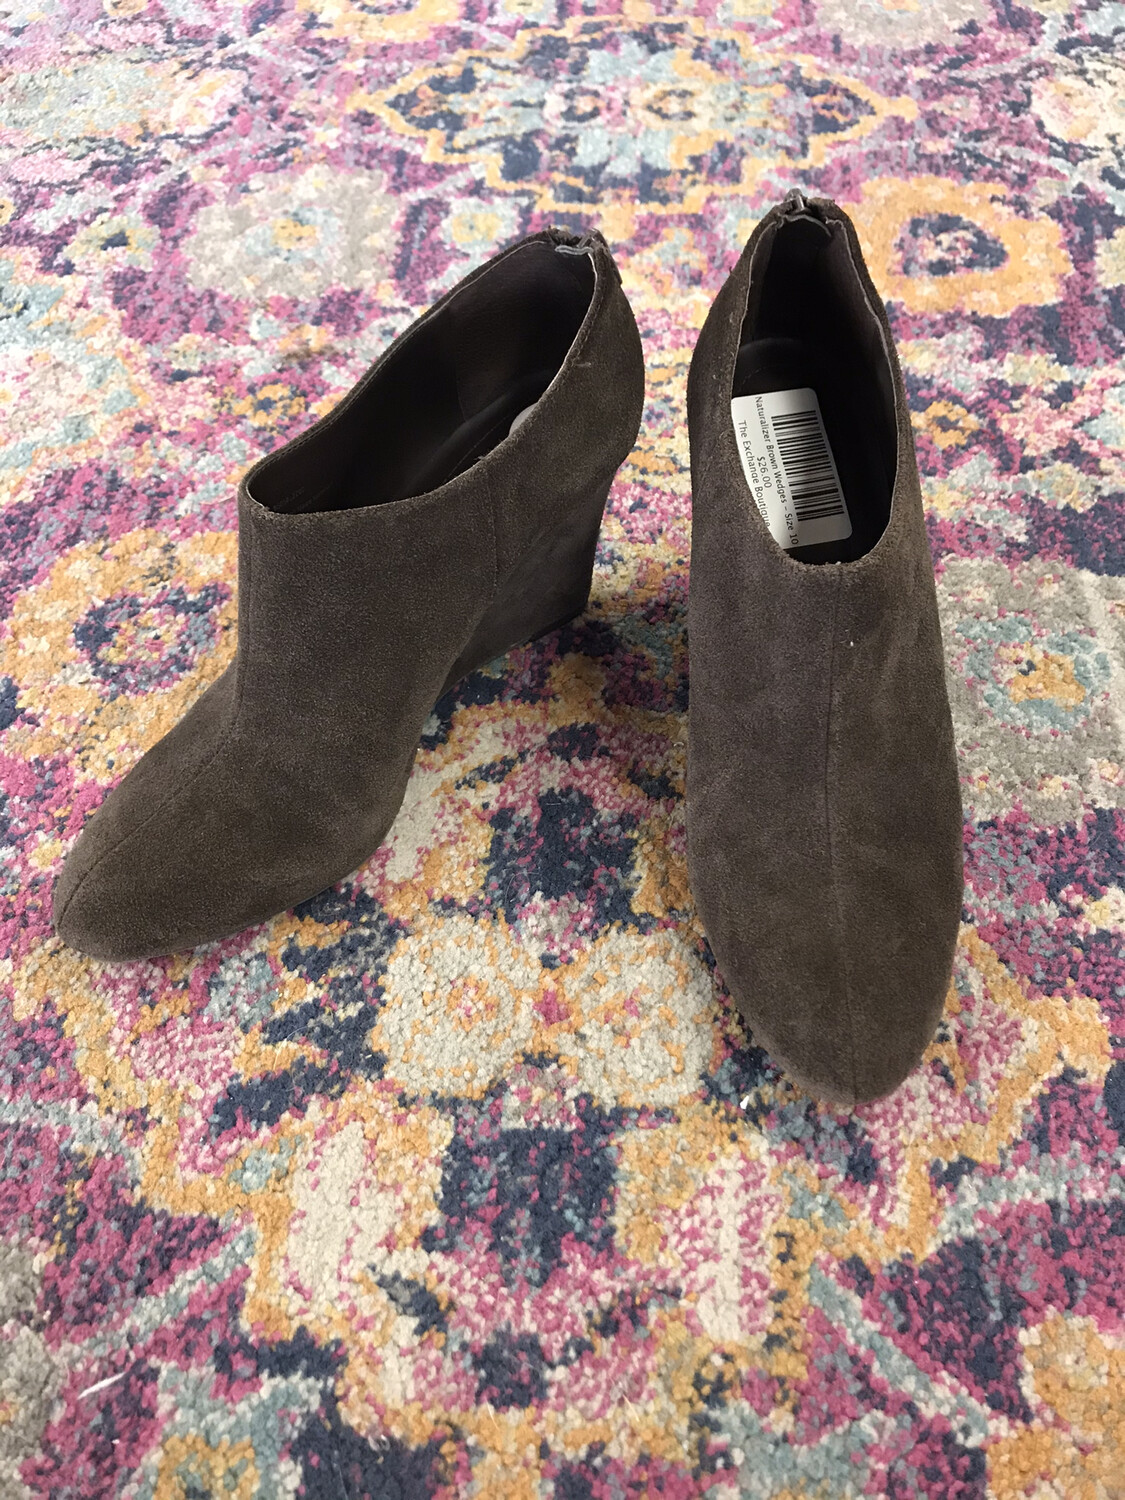 Naturalizer Brown Wedges - Size 10